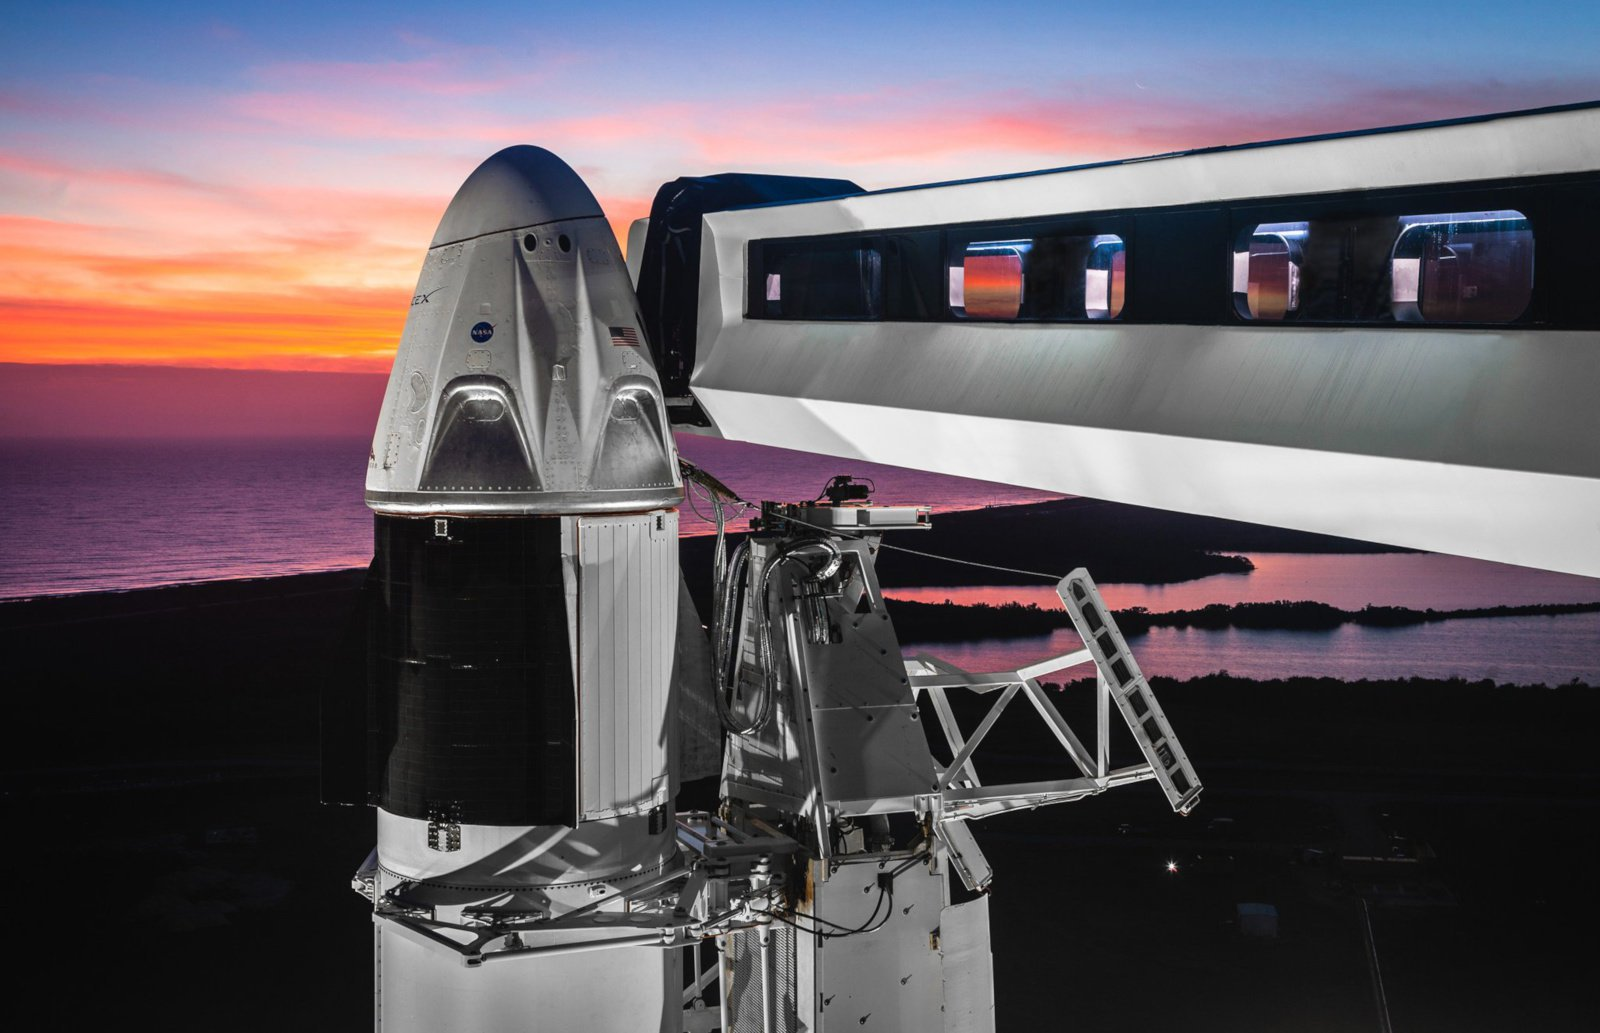 SpaceX odłożyła pierwszy lot Crew Dragon do 2 marca